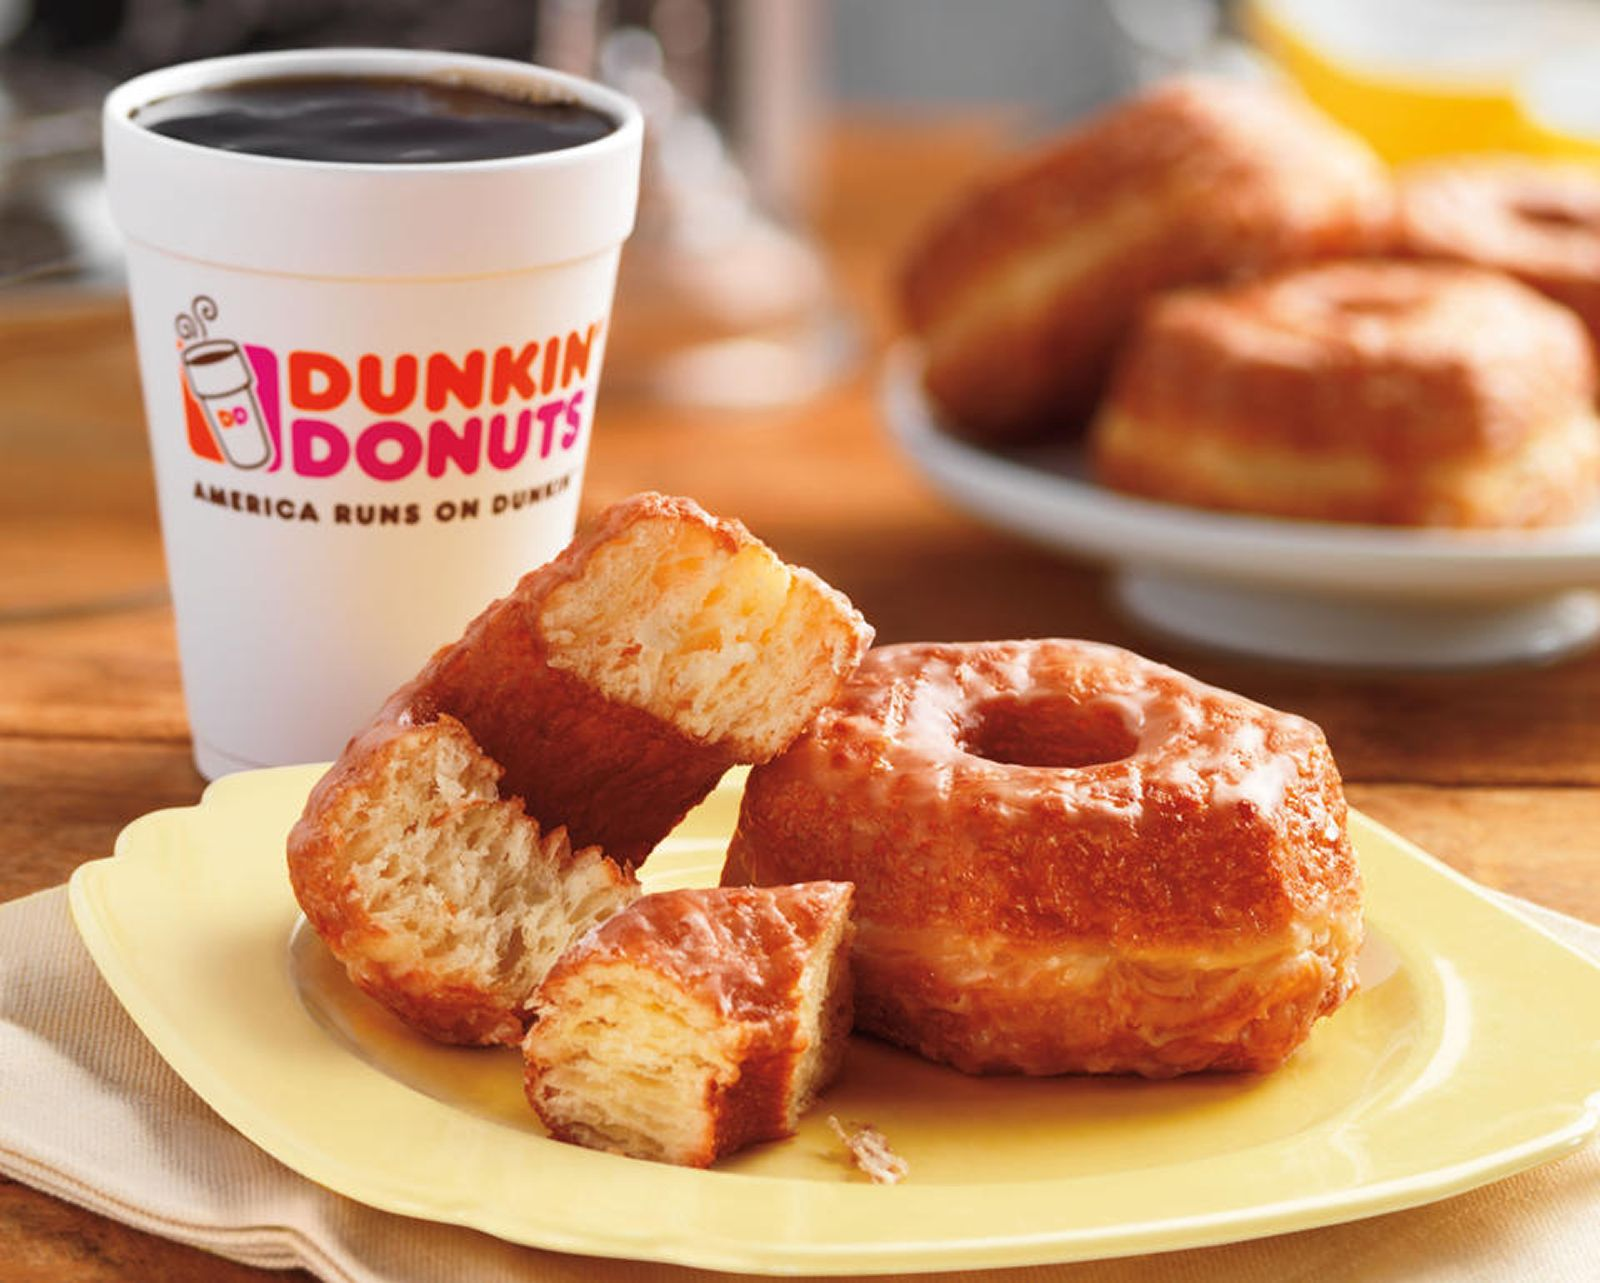 Dunkin' Donuts Announces Plans For Four New Restaurants In Rochester With Existing Franchisee, Donut Kings, LLC.